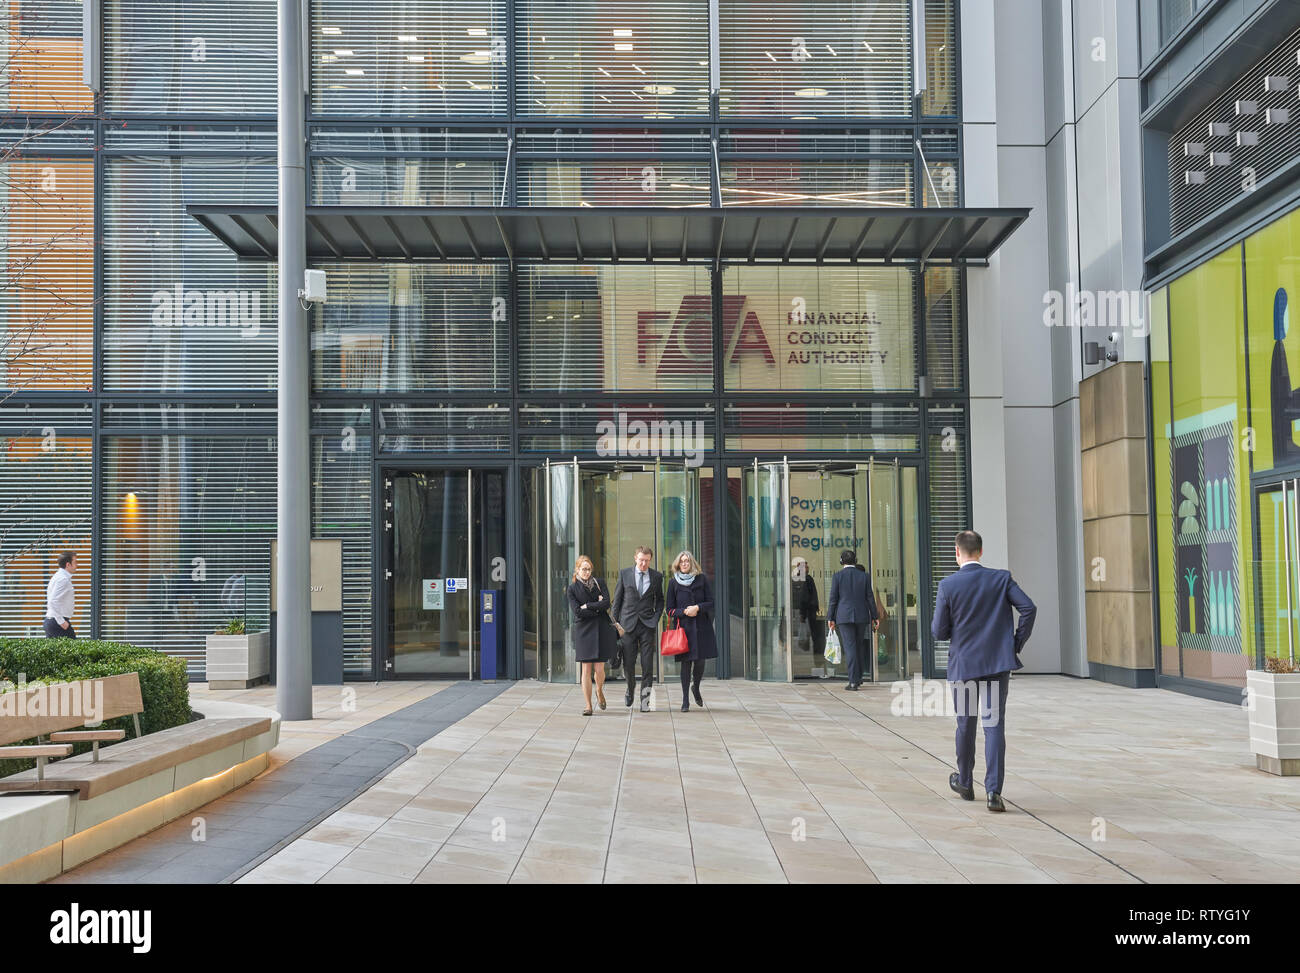 financial conduct authority offices London Stock Photo